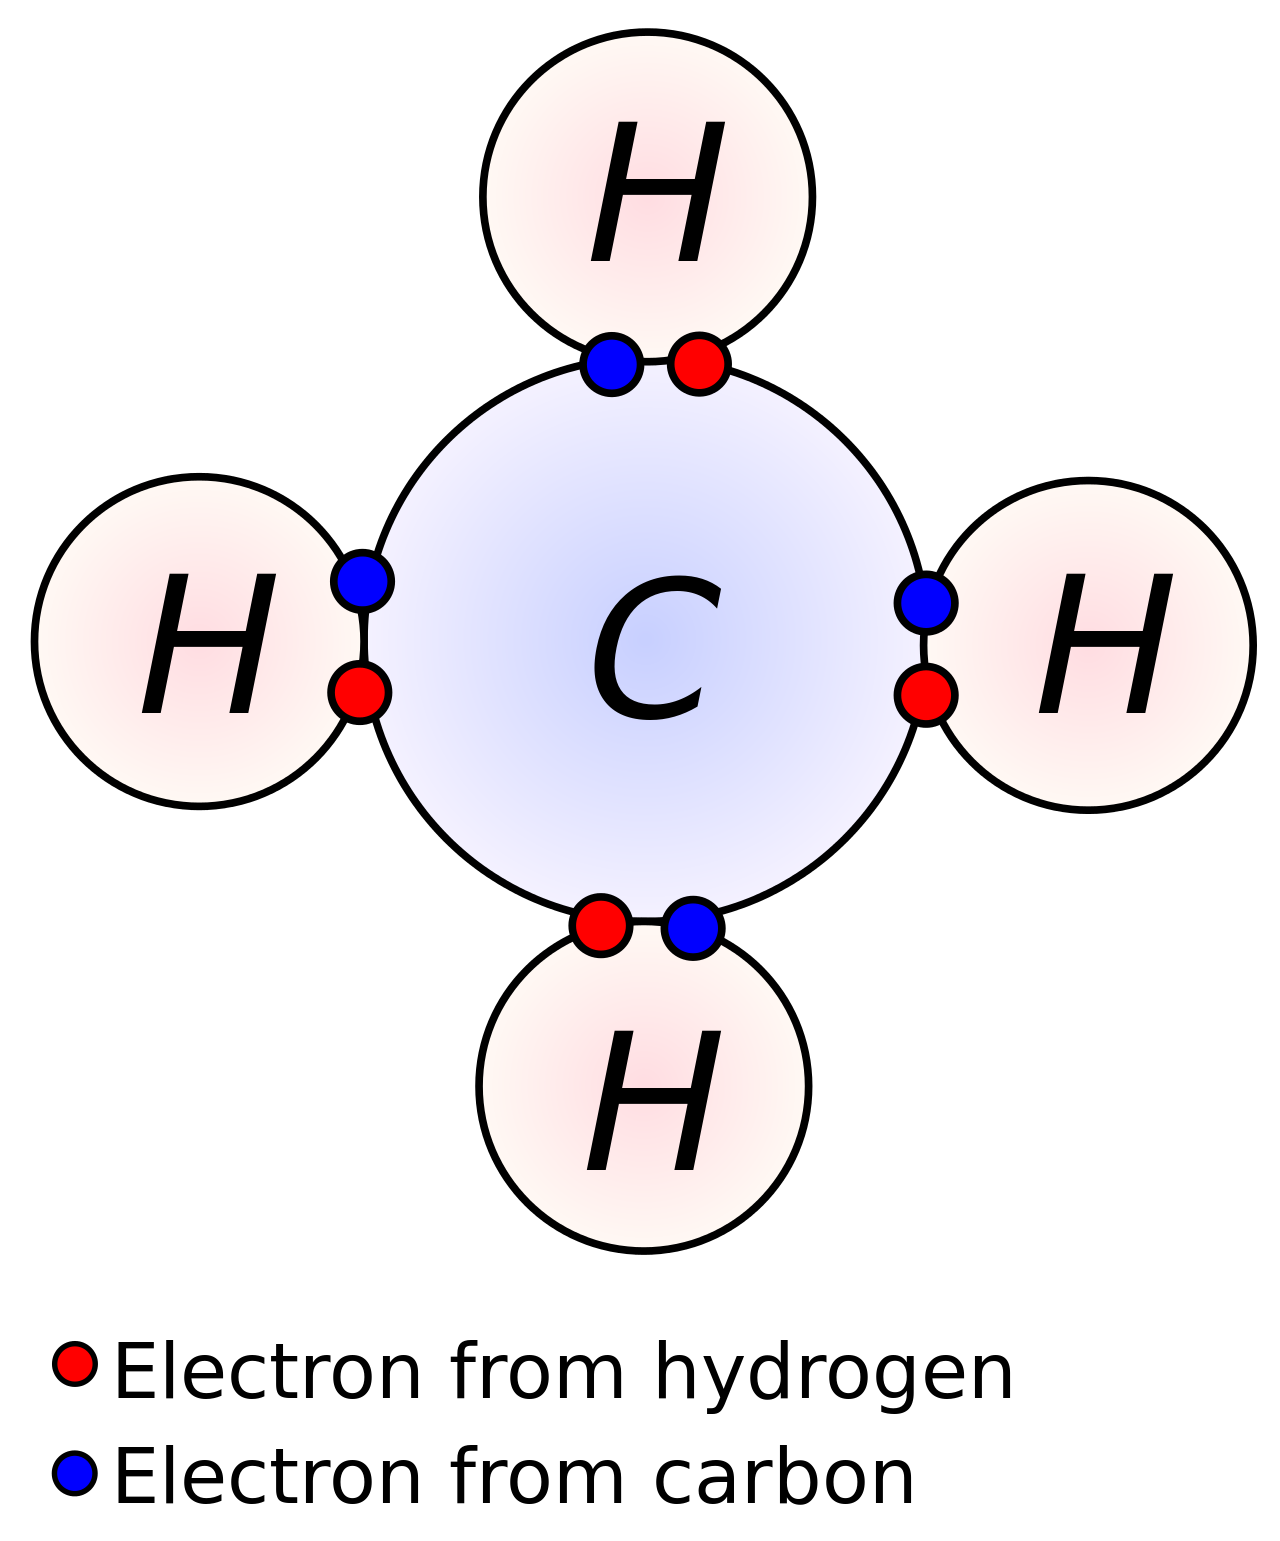 four covalent bonds carbon has four valence electrons and here a valence of four each hydrogen atom has one valence electron and is univalent